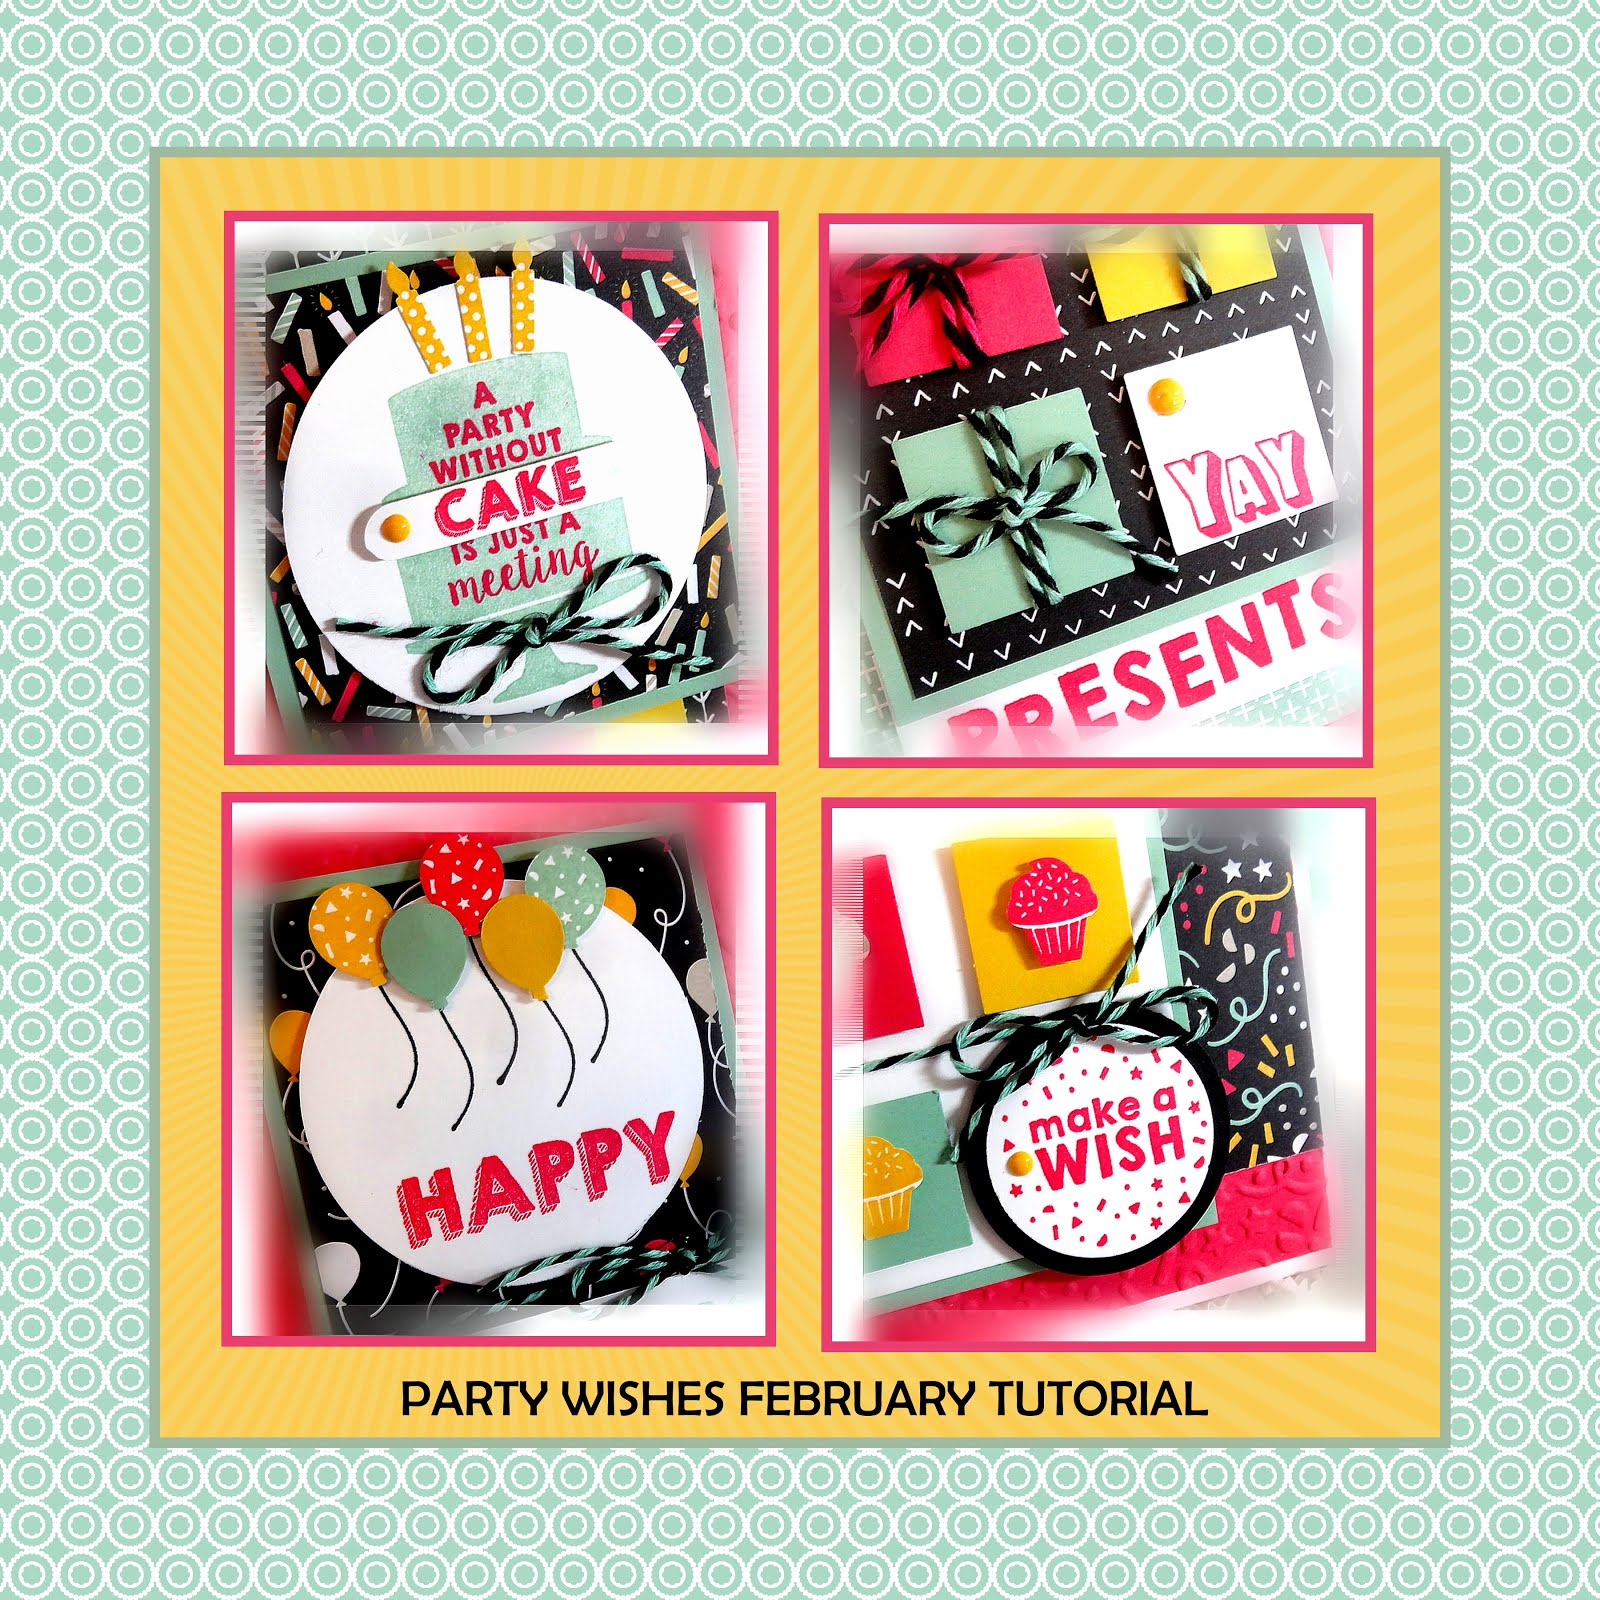 February 2016 Party Wishes Tutorial